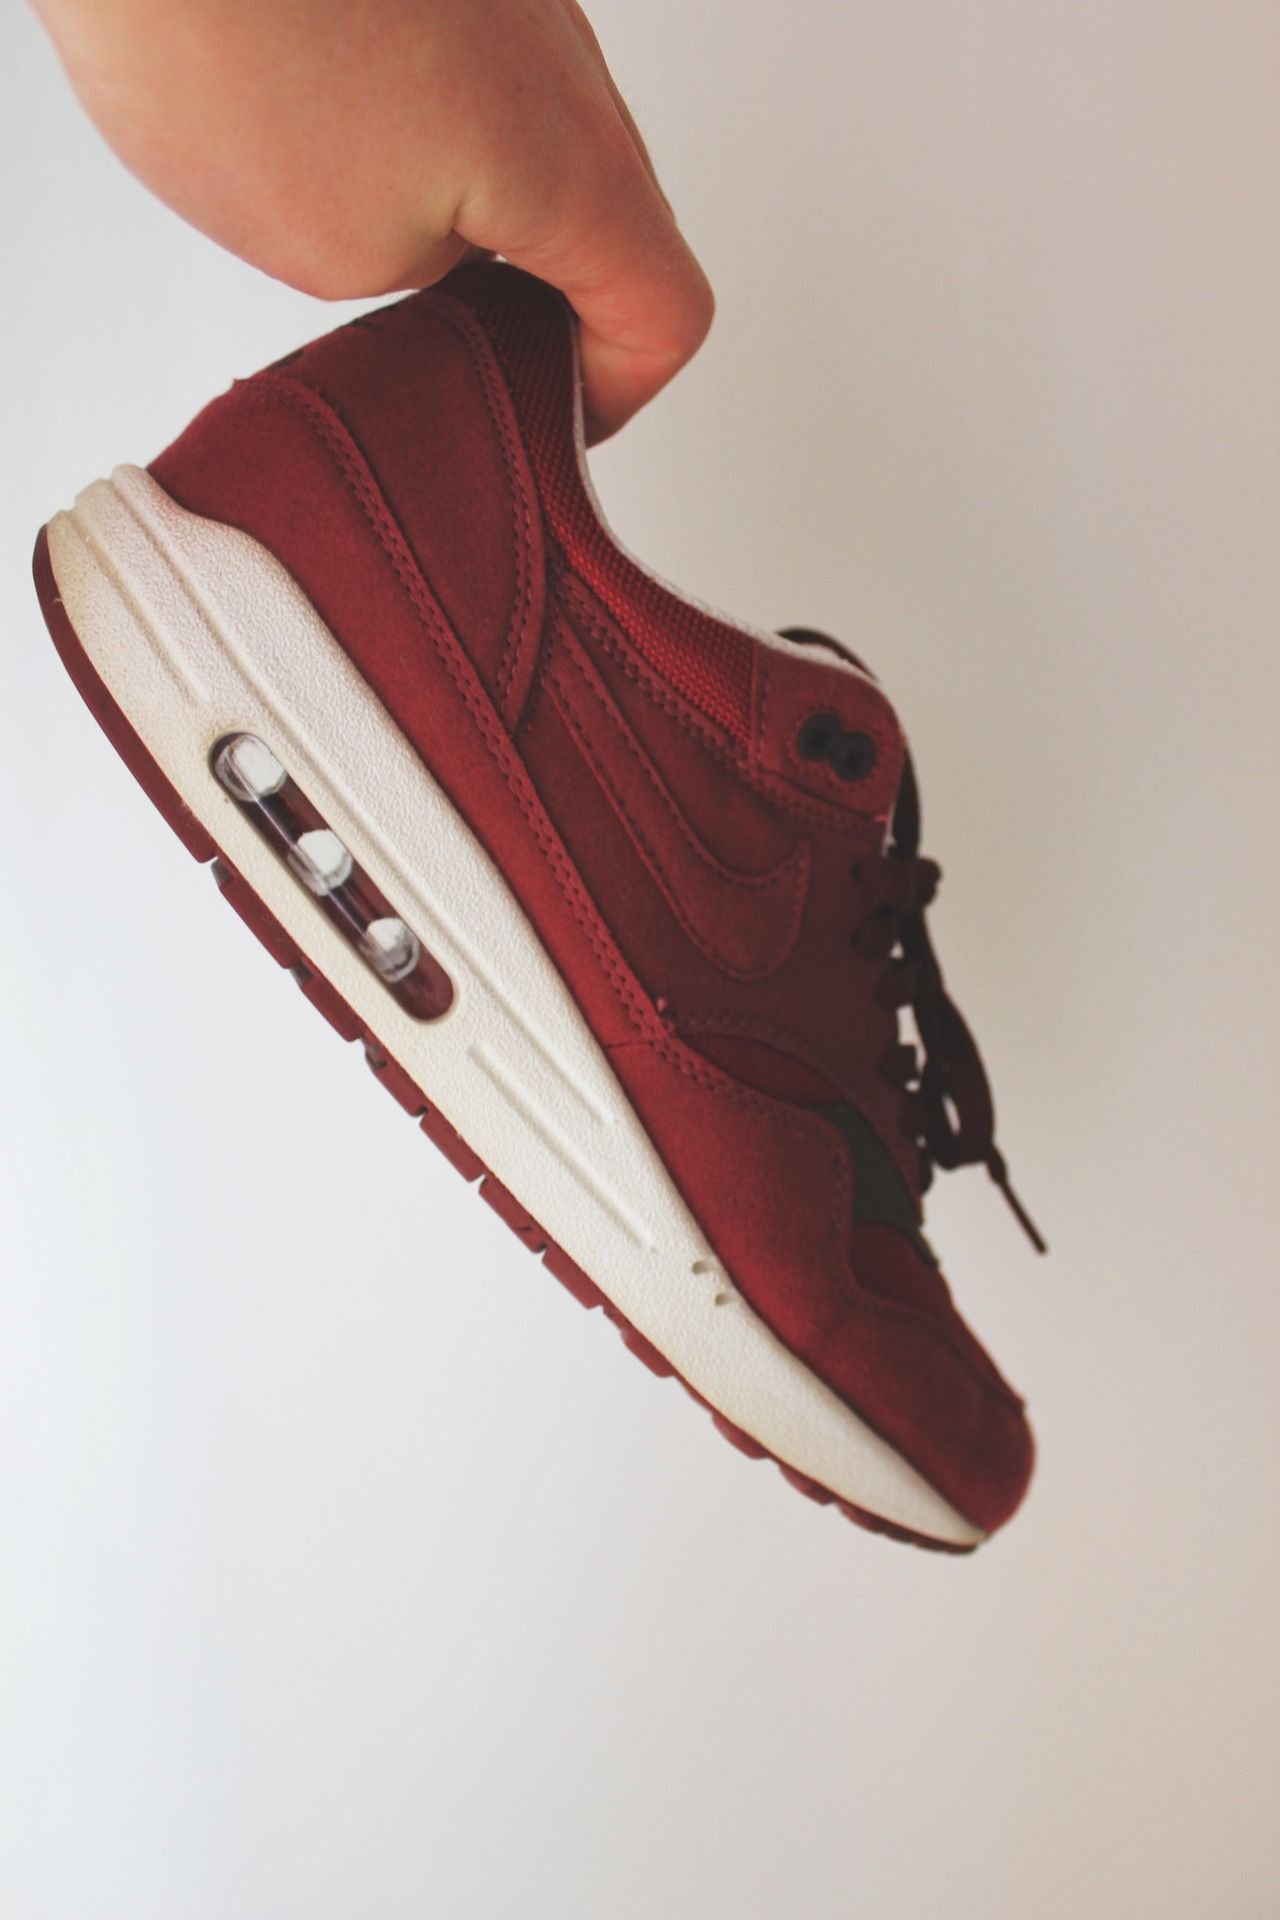 separation shoes d5668 f9e90 Nike Air Max 1 Burgundy  sneakers Chaussures Homme, Chaussures Nike, Toile,  Series